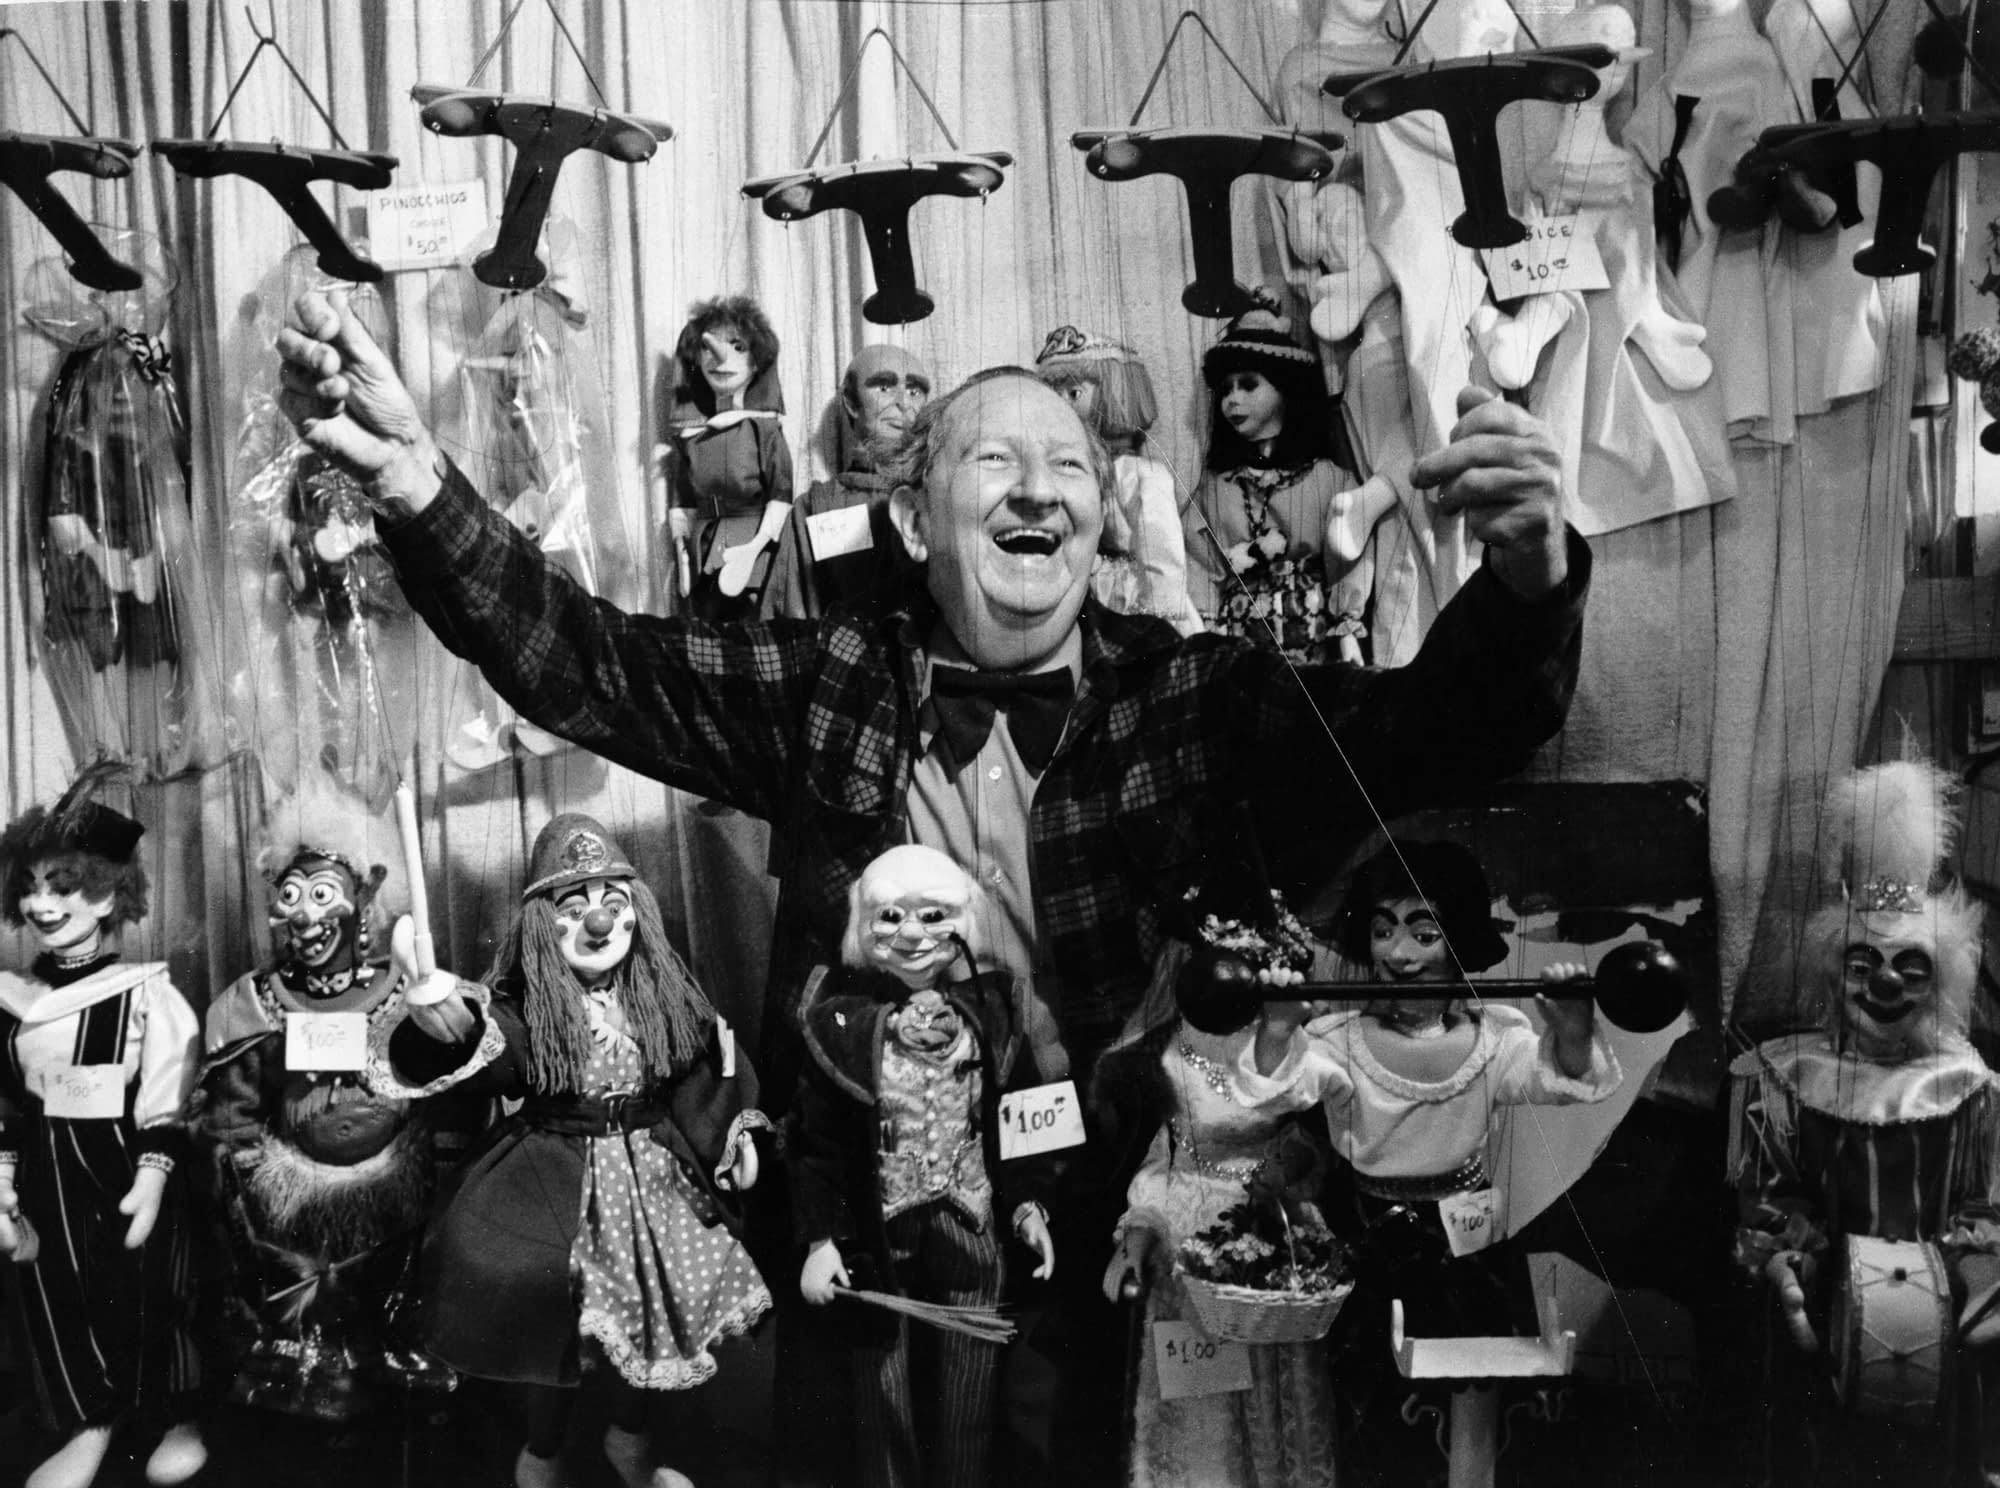 A Smiling Harry Burnett poses with arms extended surrounded by Puppets